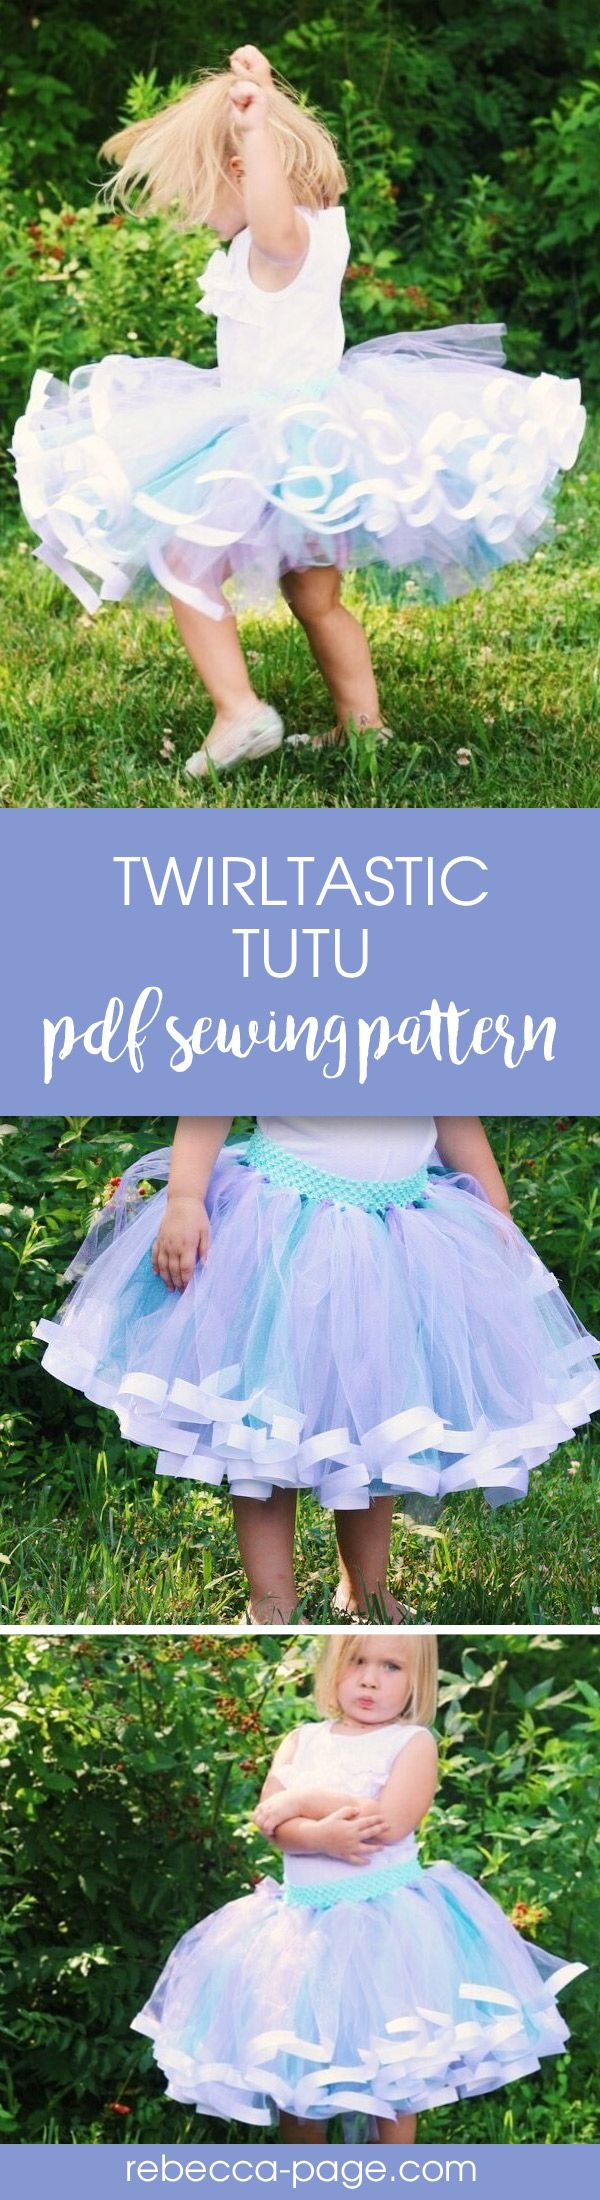 PDF sewing pattern - The Twirltastic Tutu is the cutest ribbon tutu pattern about. With yards of tulle and super curly ribbon, it's literally twirltastic.